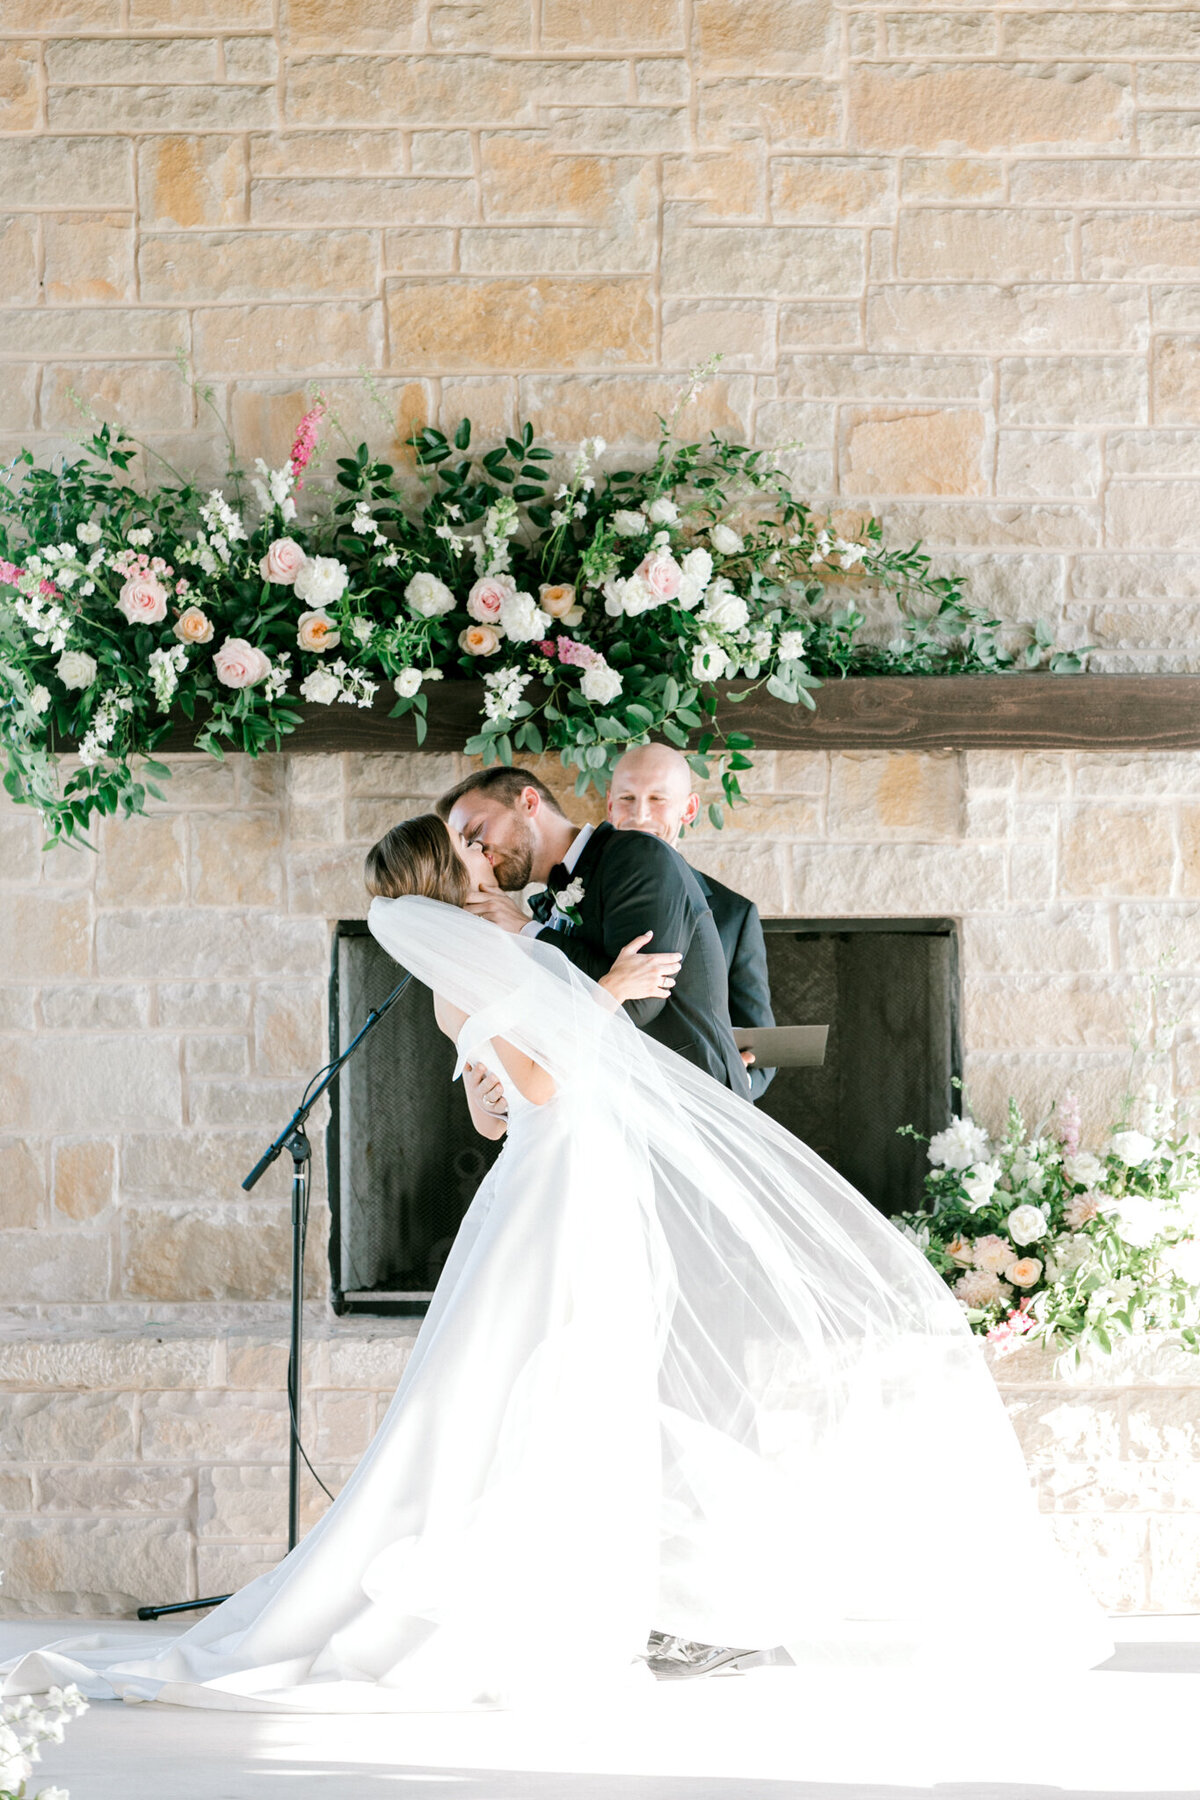 Lexi Broughton & Garrett Greer Wedding at Dove Ridge Vineyards | Sami Kathryn Photography | Dallas Wedding Photography-123